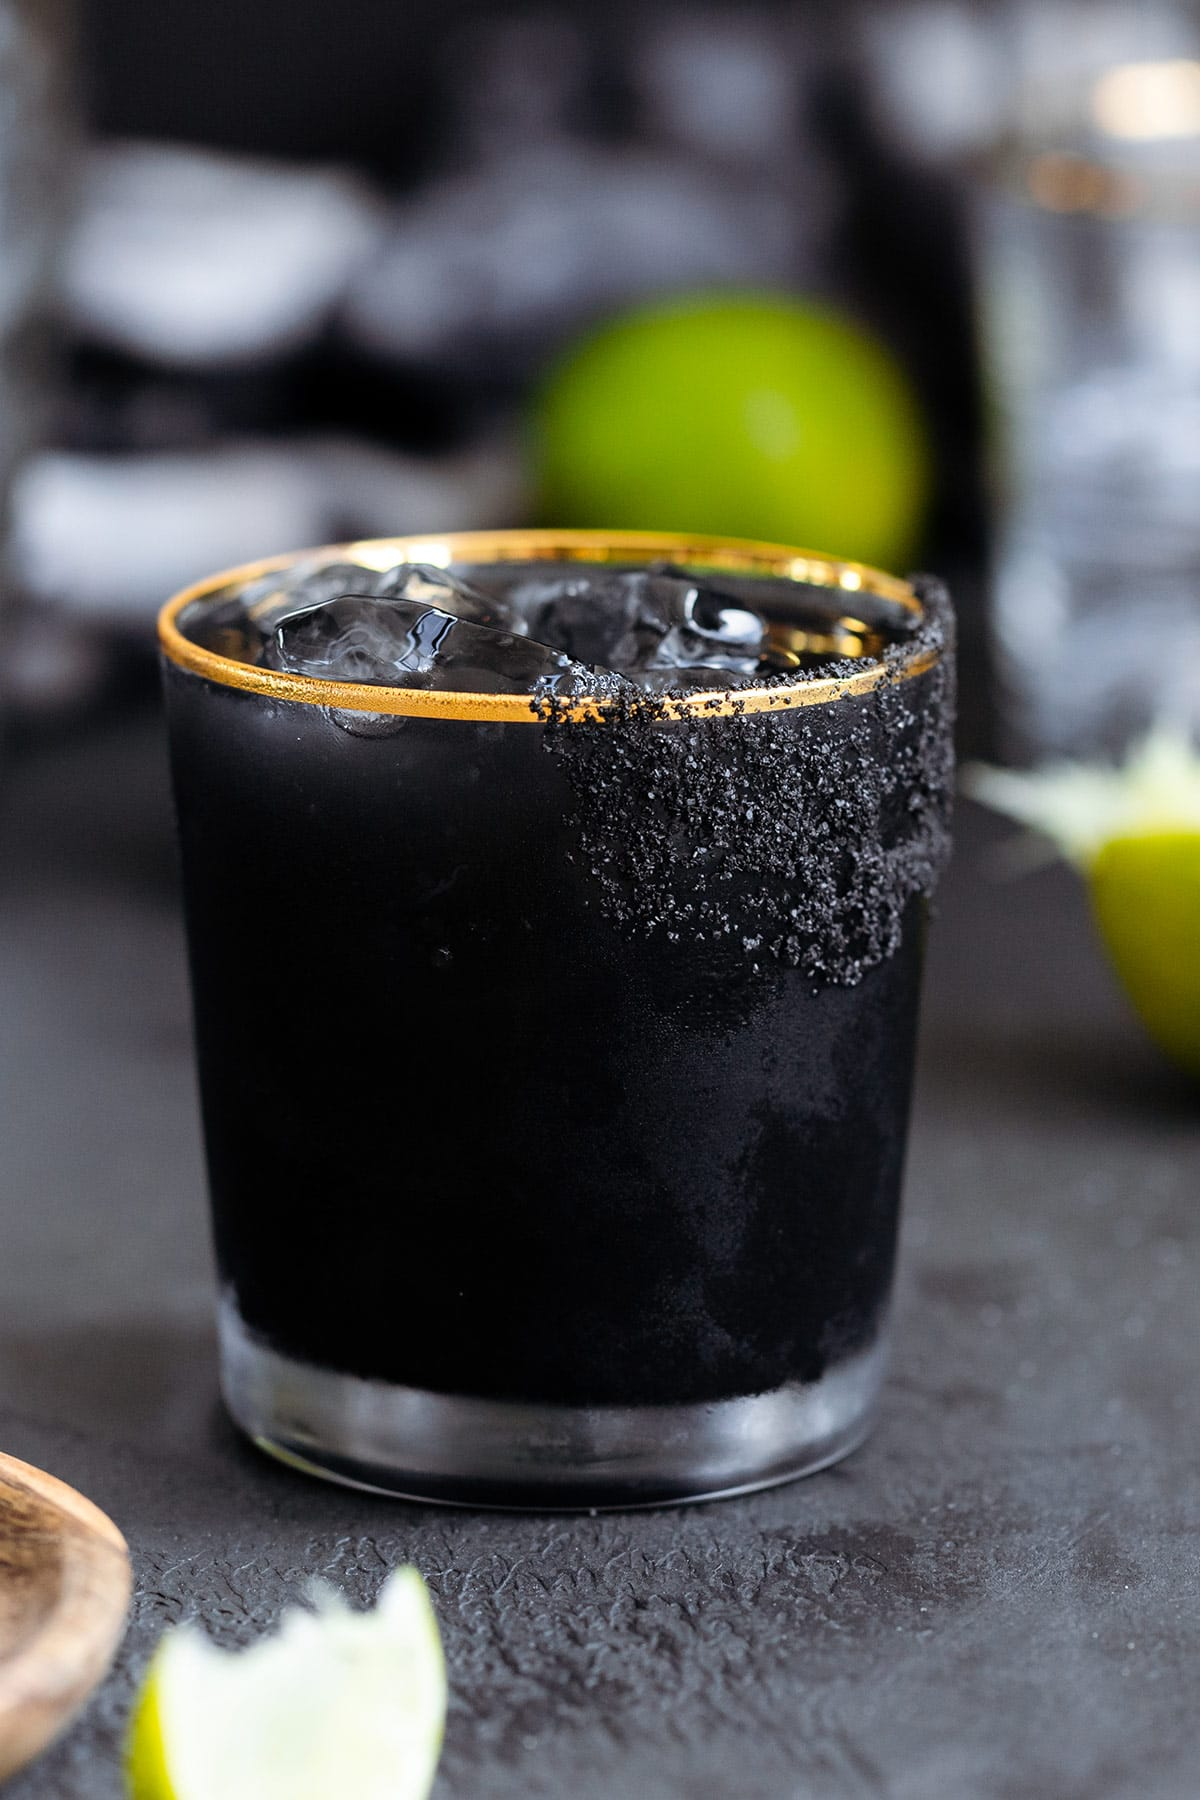 Black margarita with black salt rim on a black background with limes in the background.